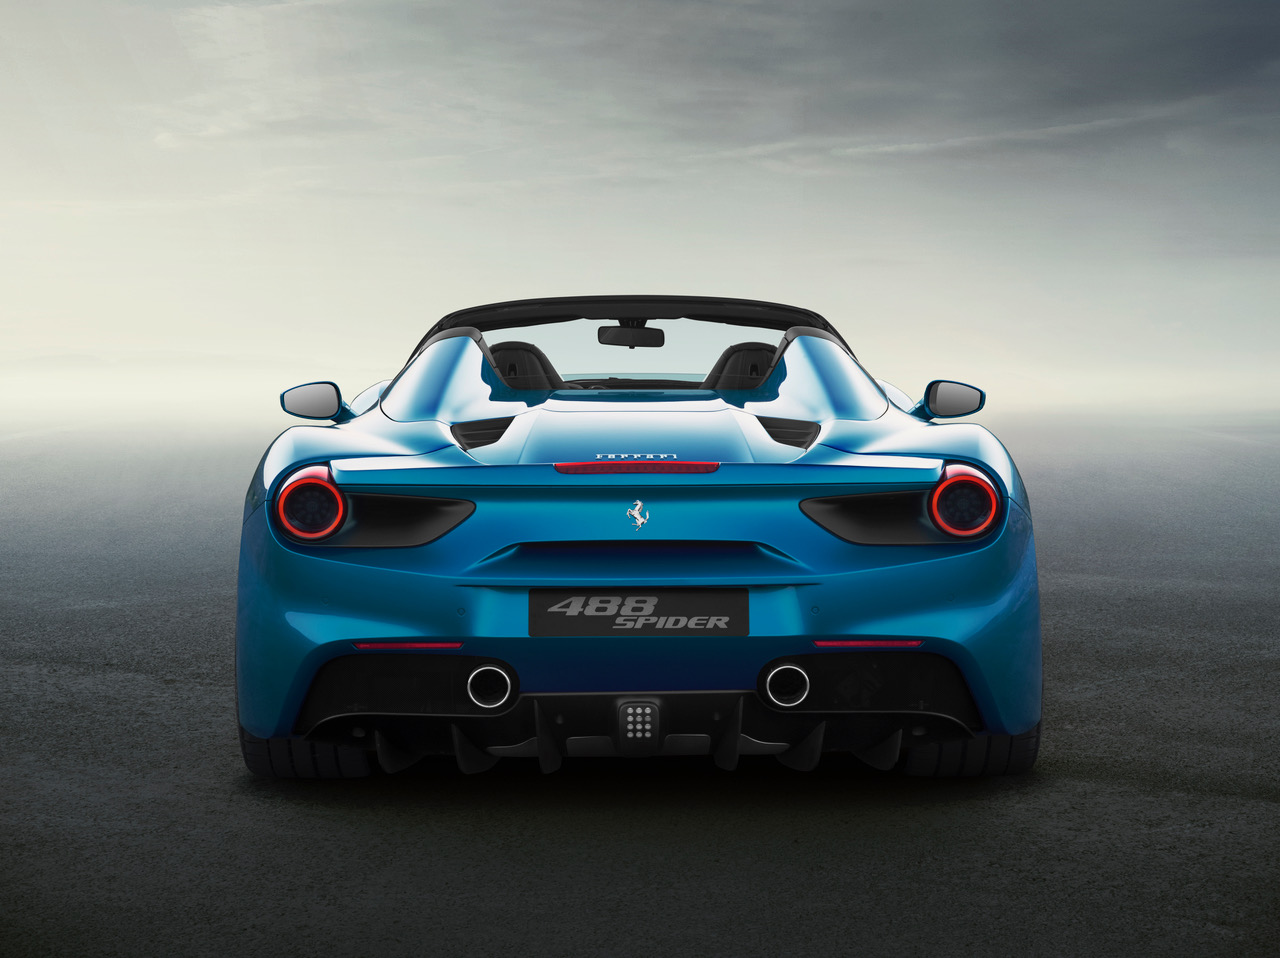 The Ferrari 488 Spider Is Gorgeous And Fast Live Trading News